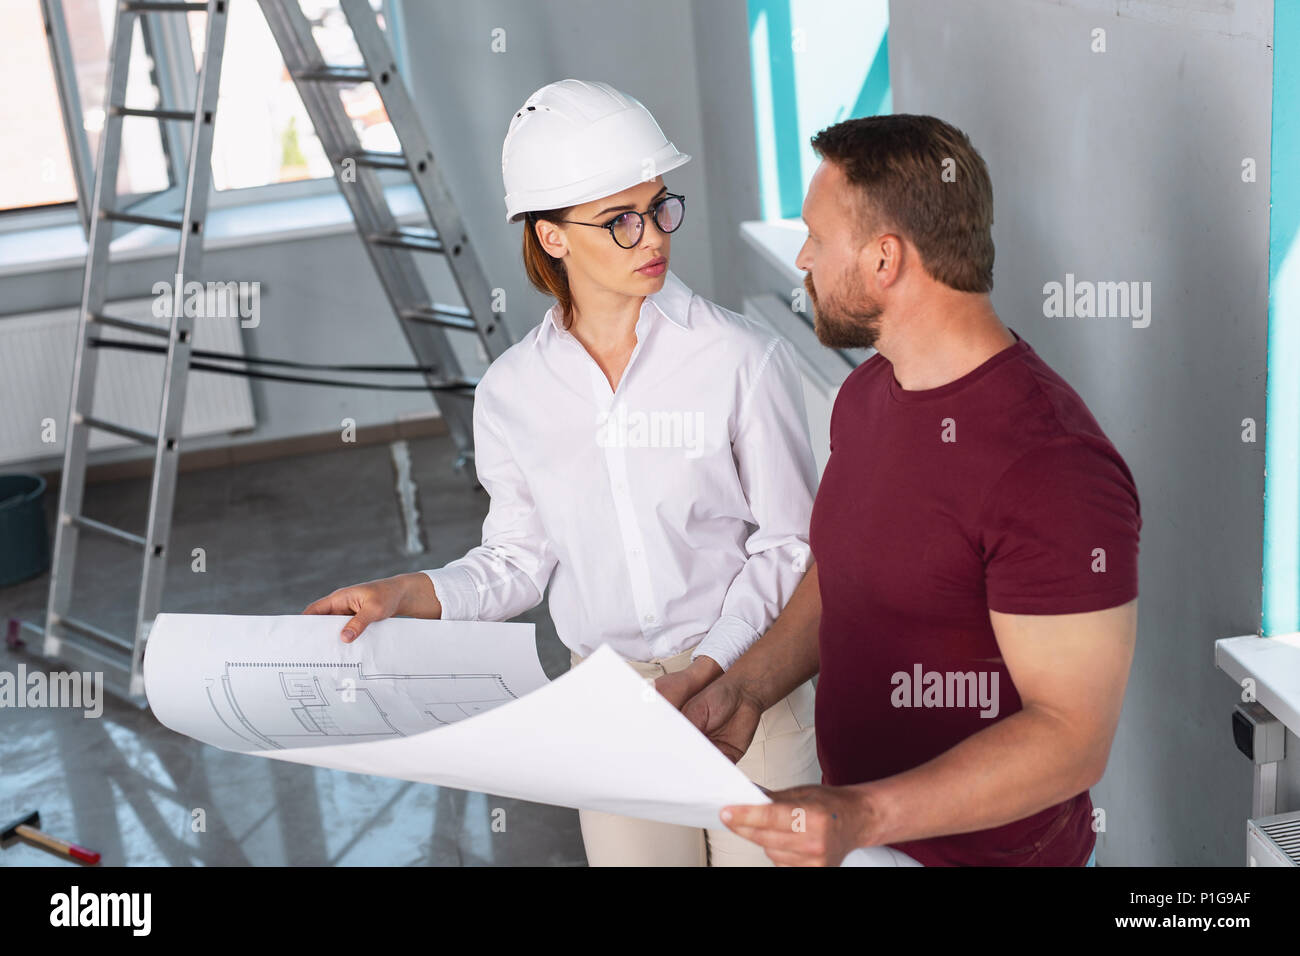 Attentive designer and client talking about the project - Stock Image